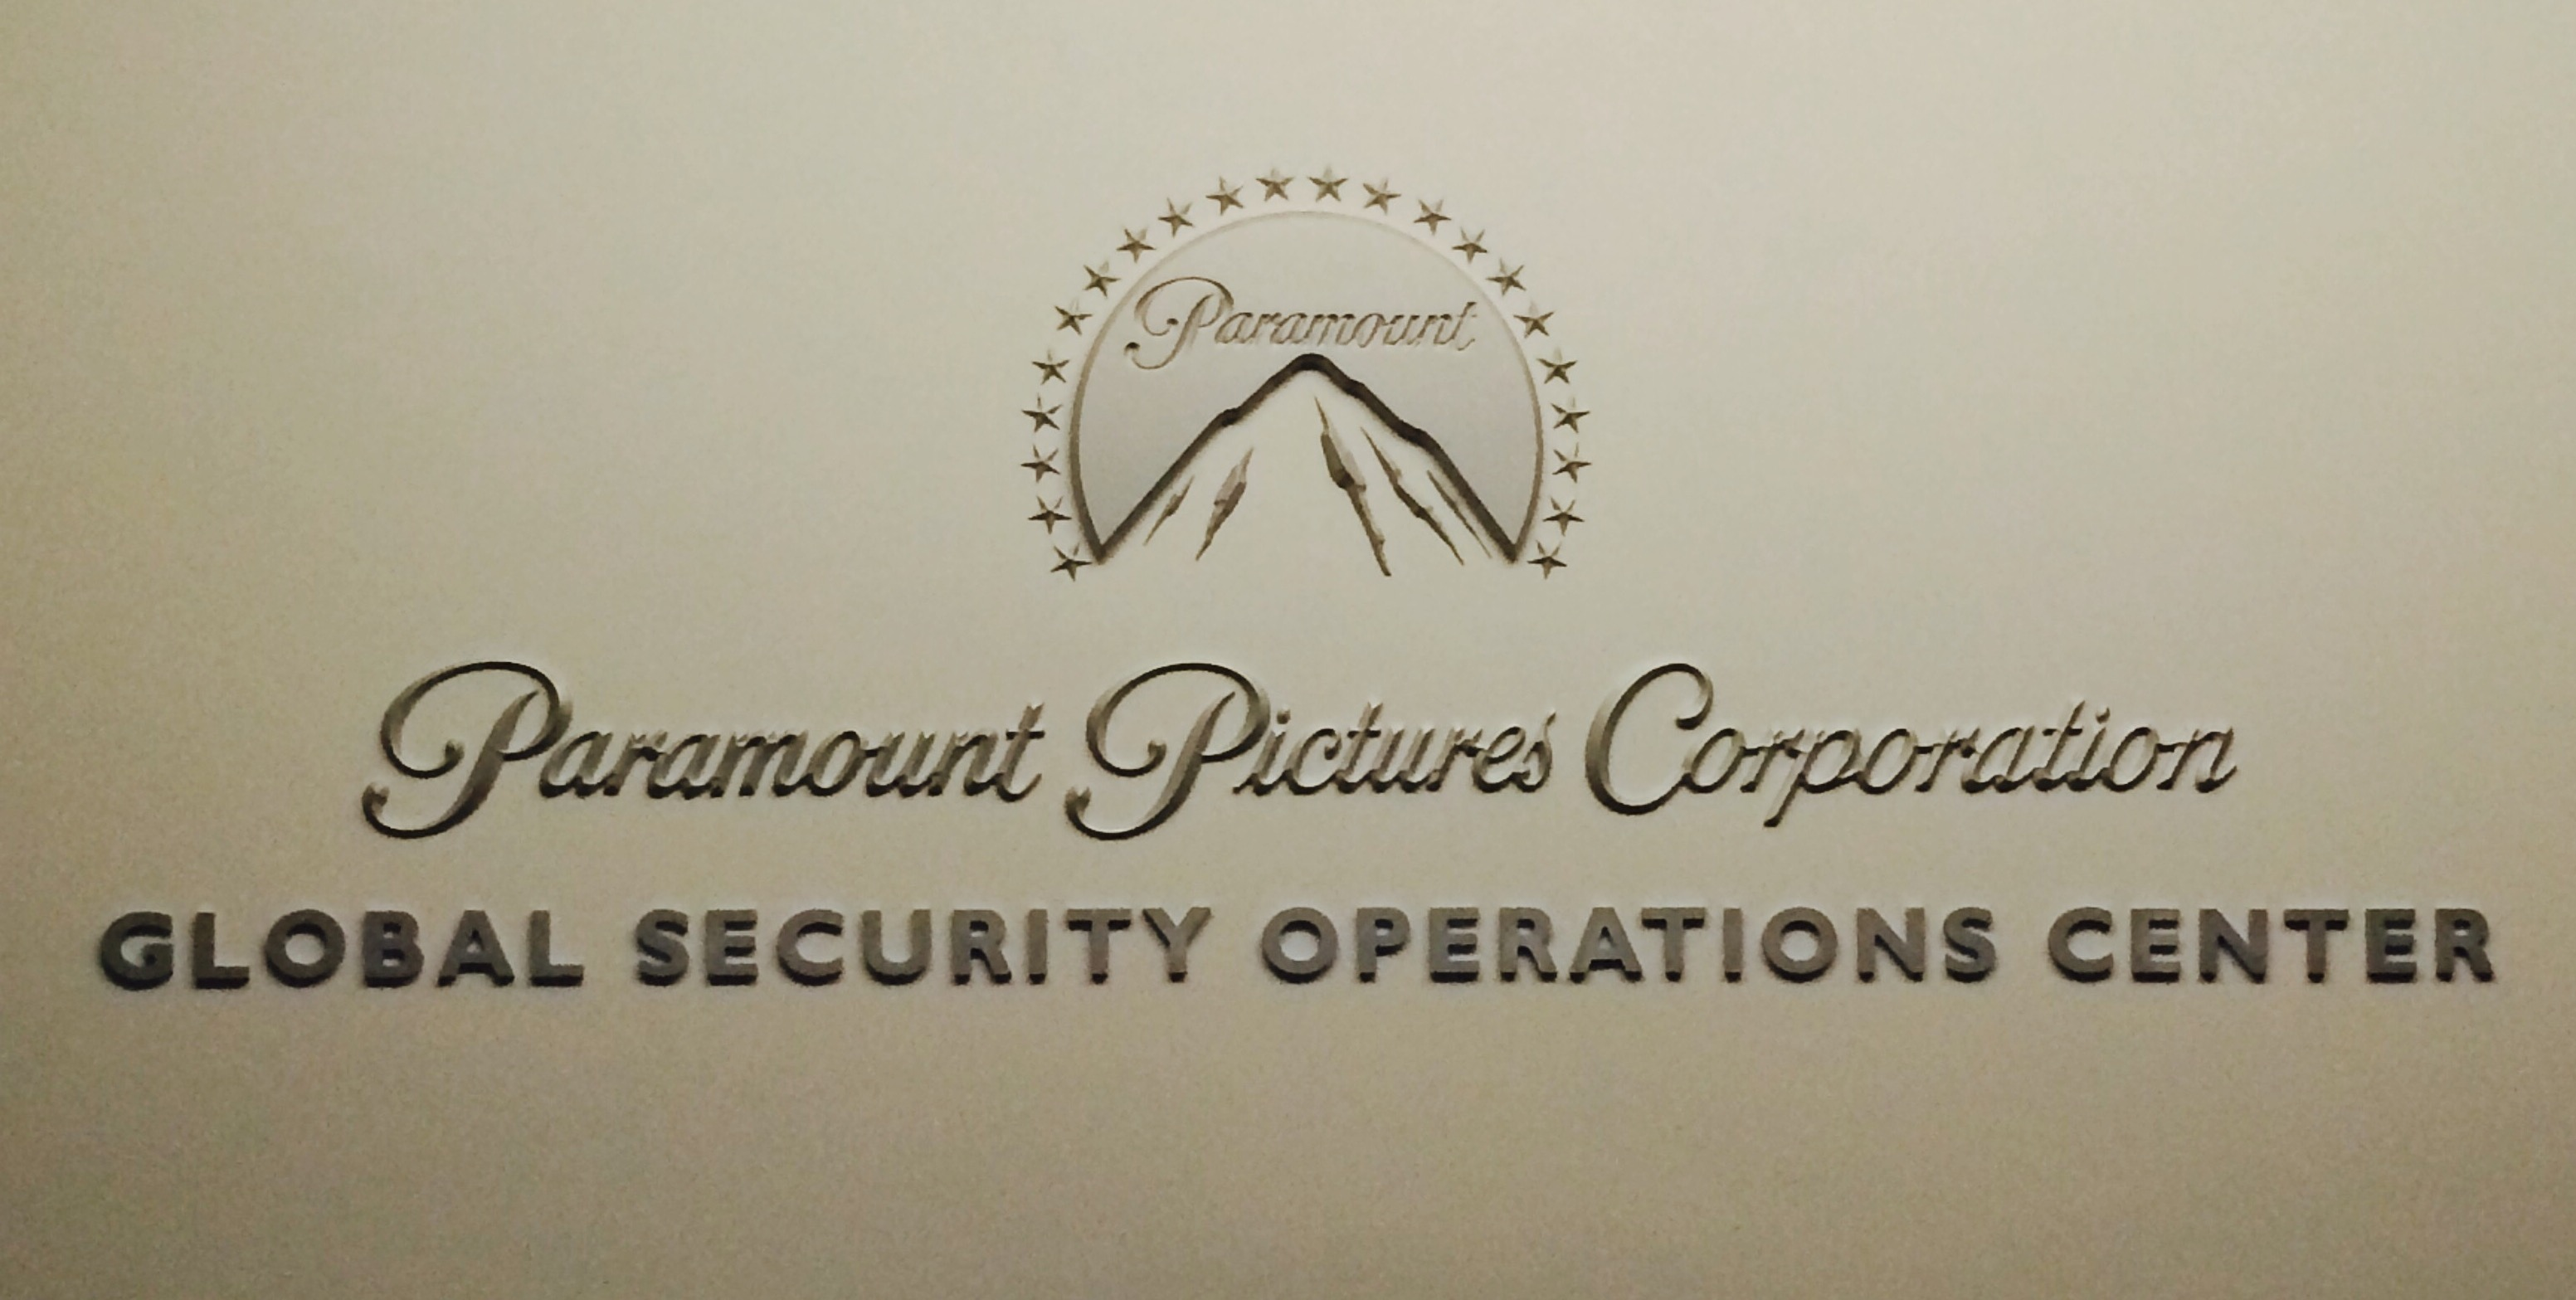 Paramount Pictures Global Security Operations Center